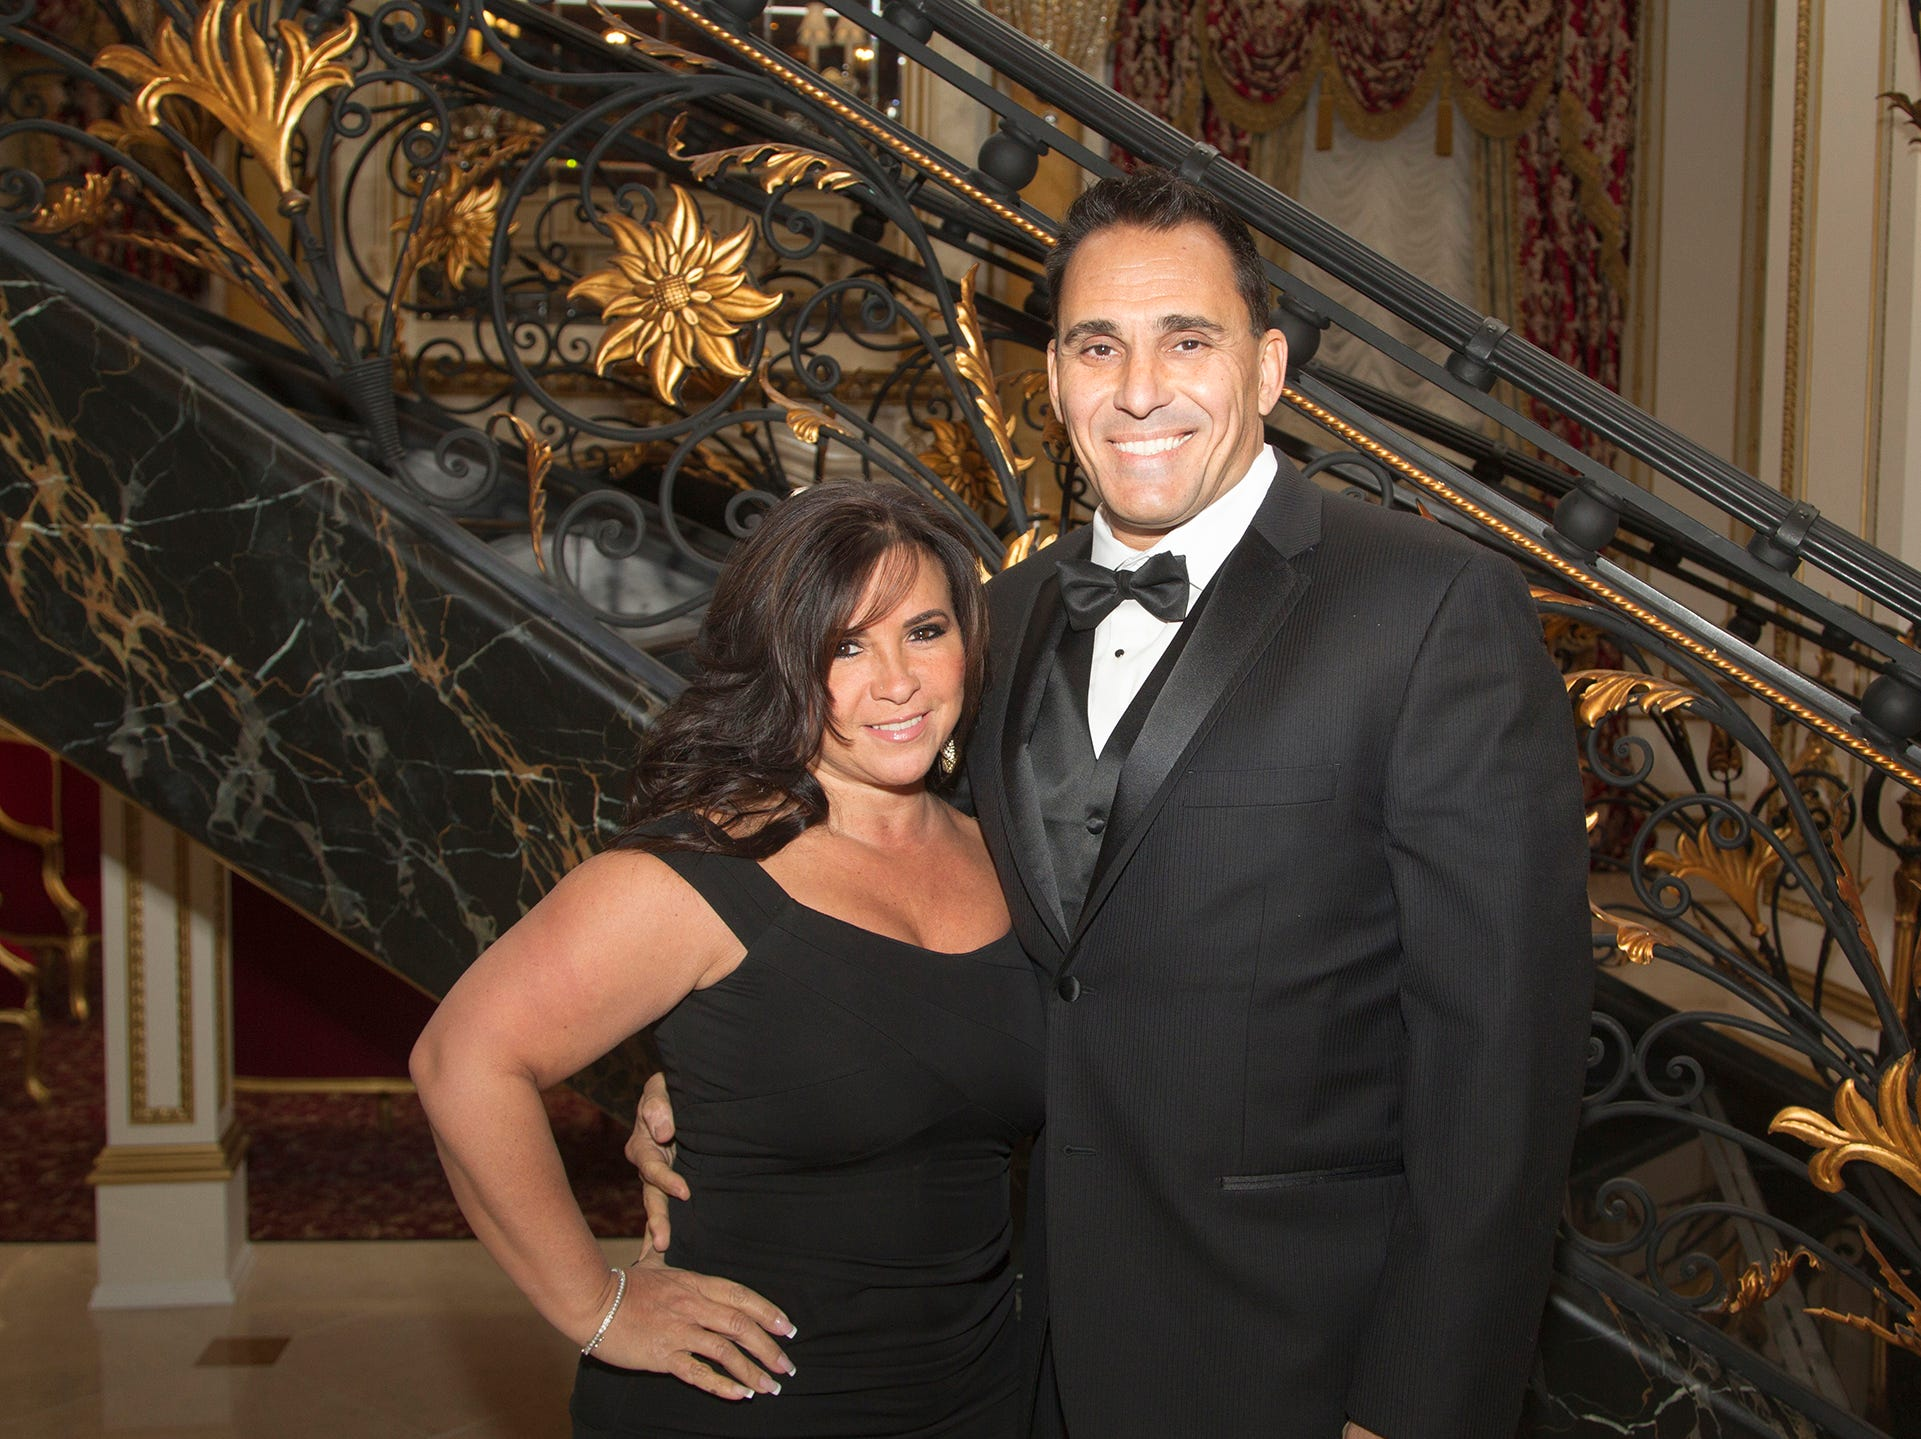 Sal and Monica D'Ambrosia. The 72nd Annual Valley Ball gala at The Legacy Castle in Pompton Plains. 11/16/2018